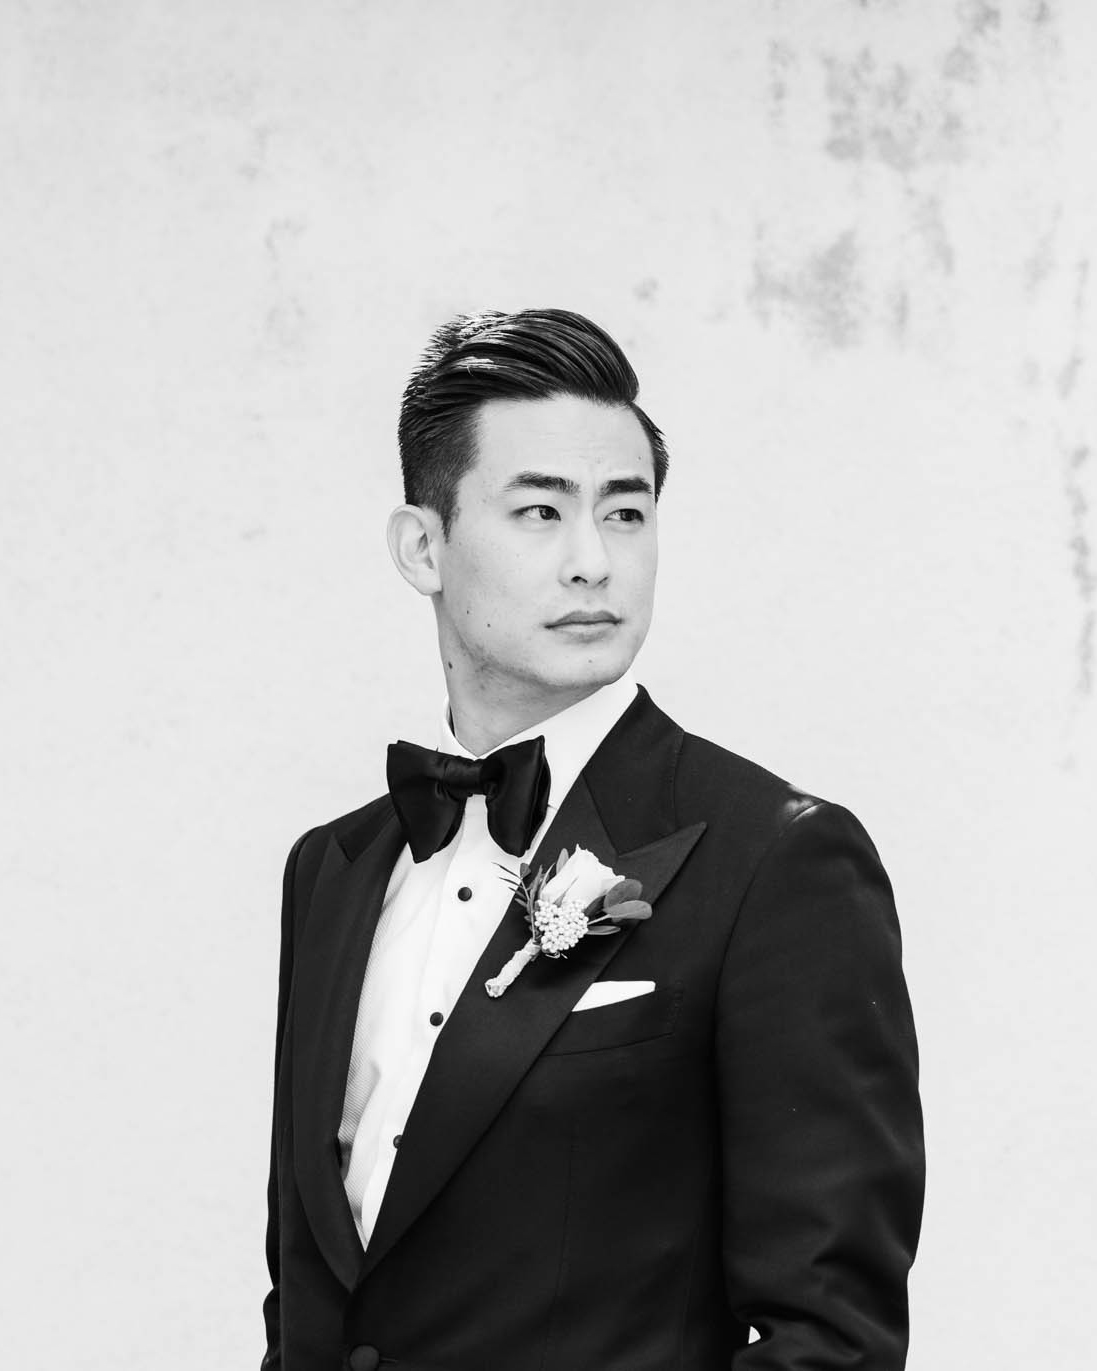 groom poses in black tuxedo and bow tie